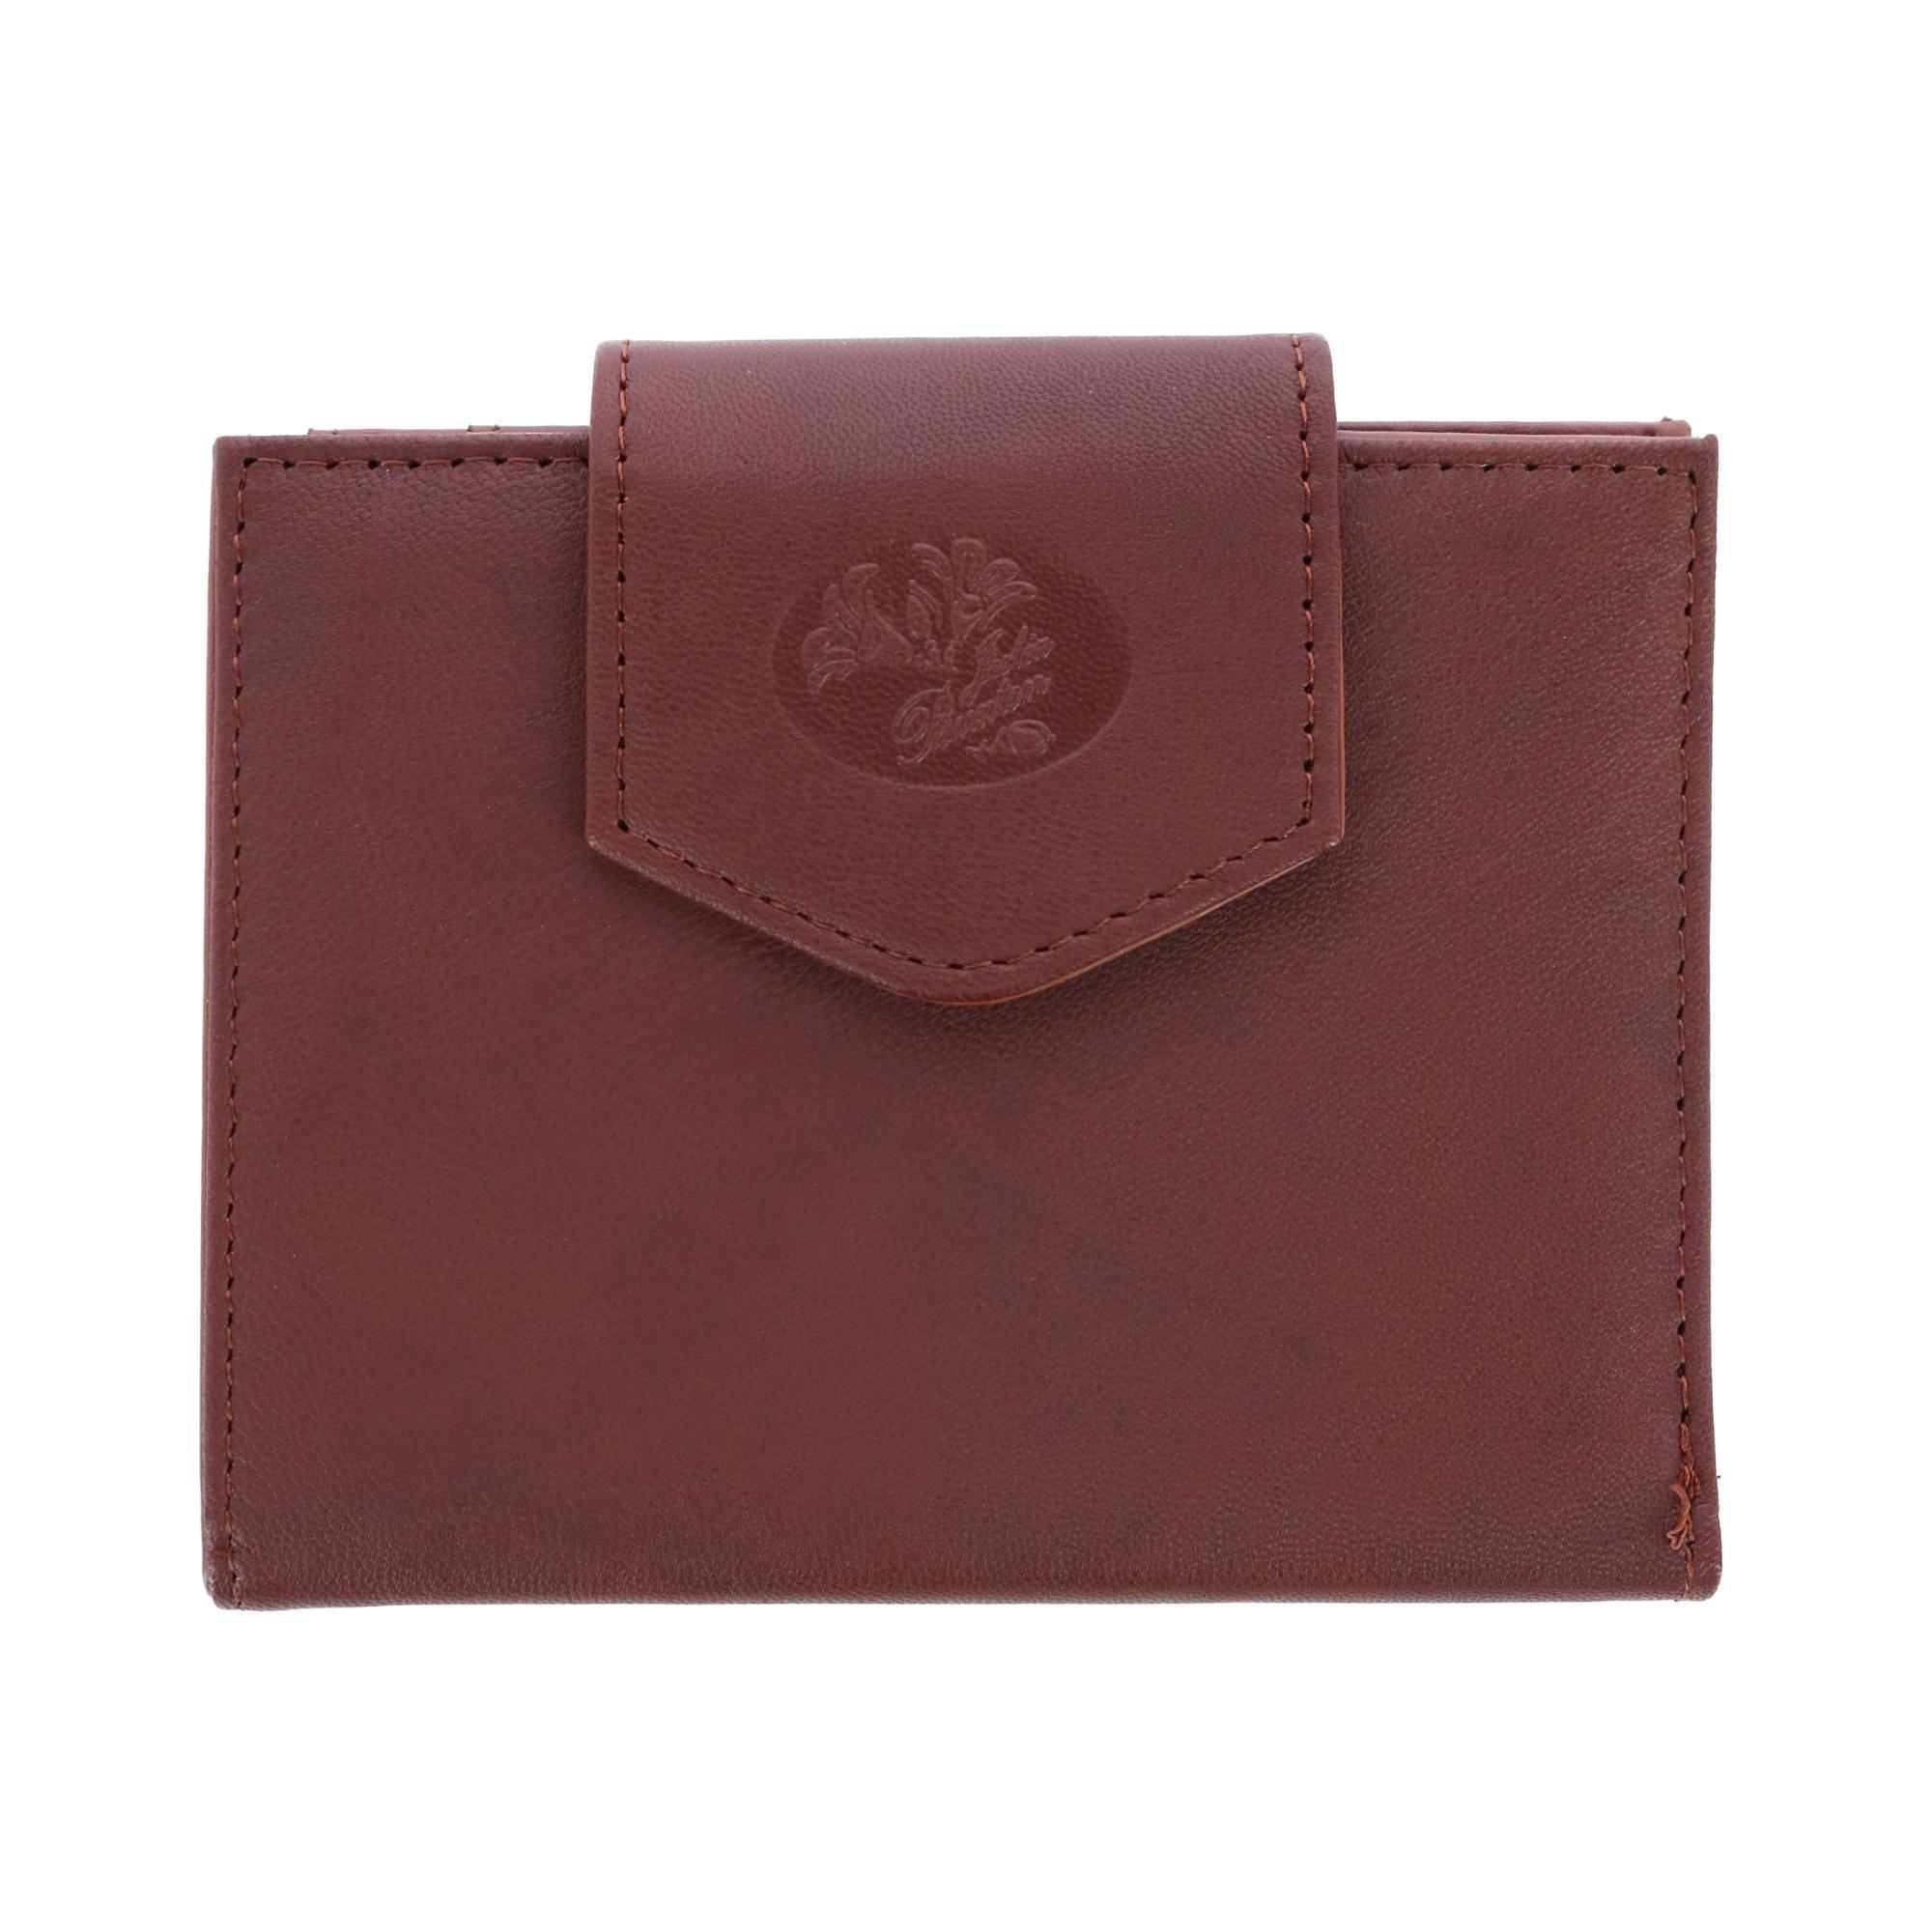 Buxton Women's Leather Attache Clutch Cardex Wallet and Coin Purse - (BX-393-55-BRN BX-393-55) photo